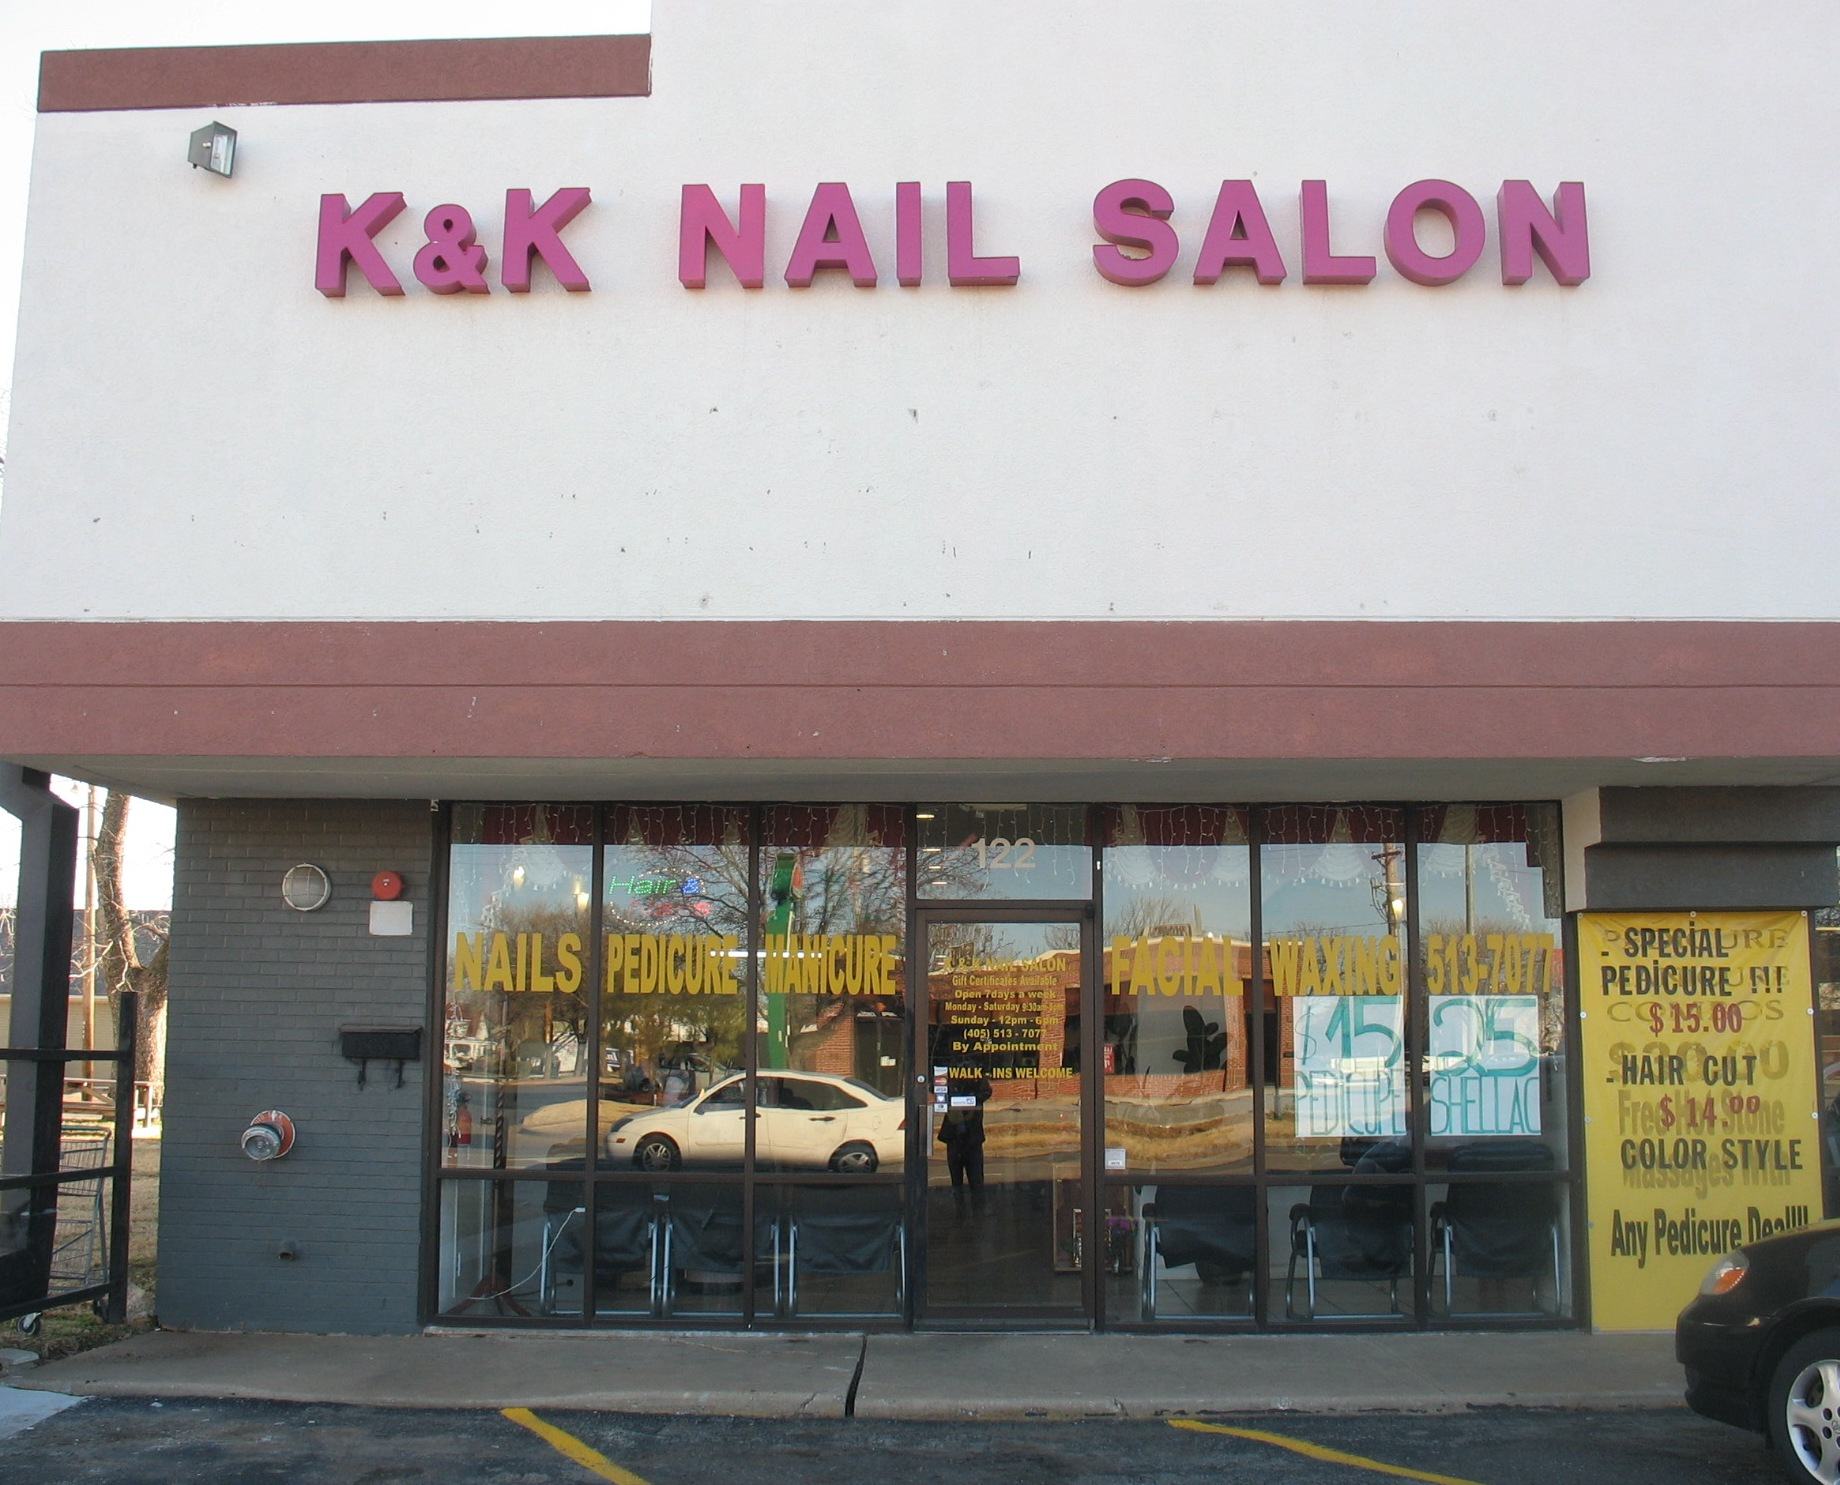 K&K Nail Salon LLC